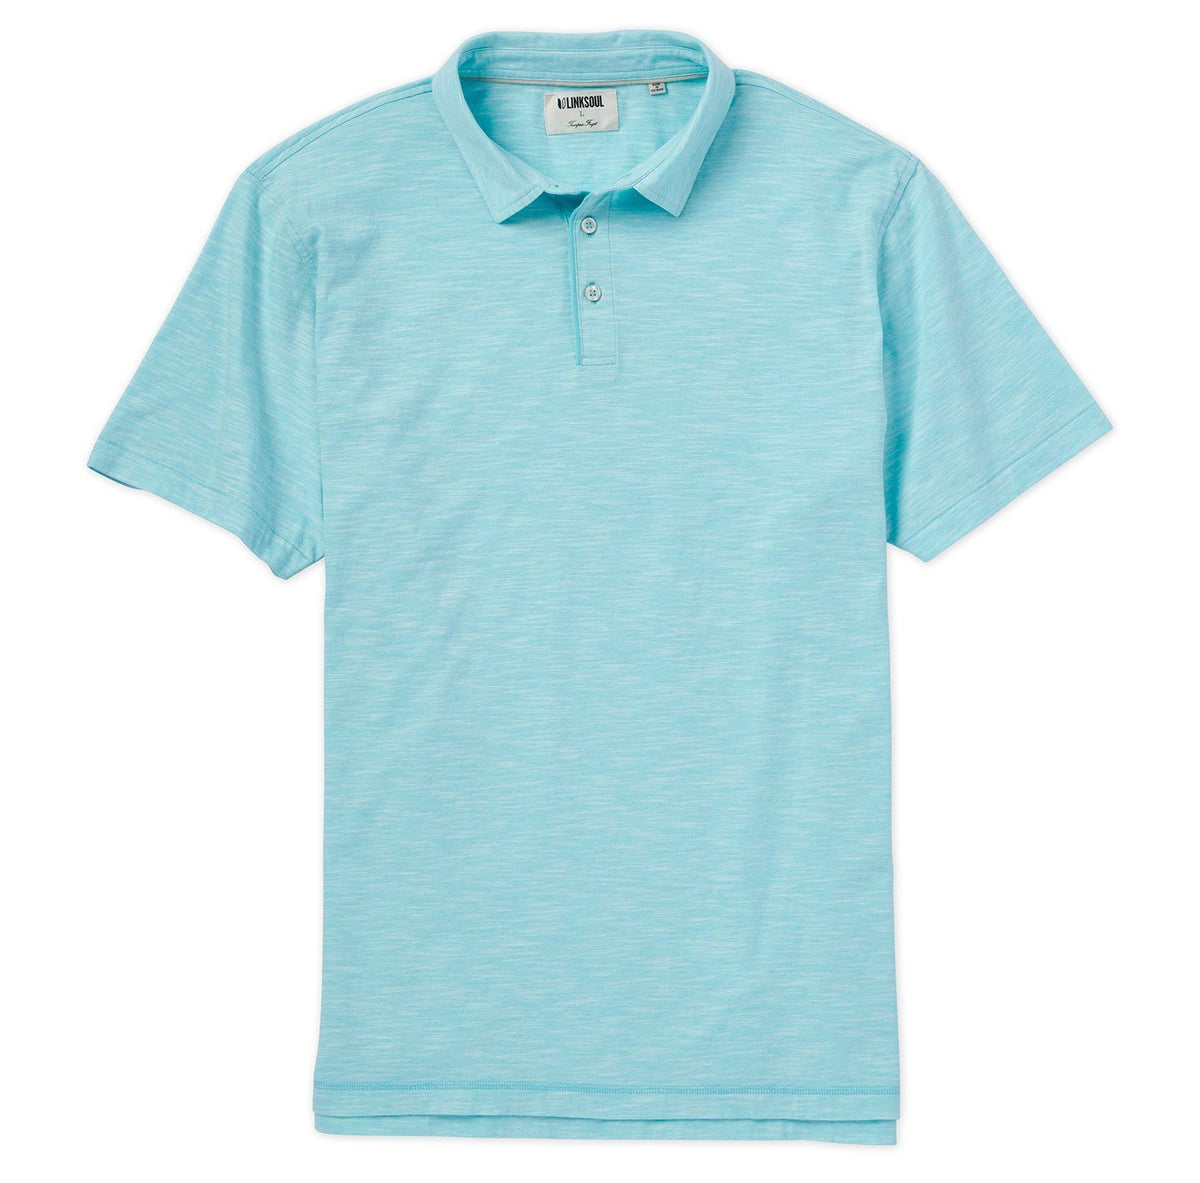 Martin Textured Polo Shirt